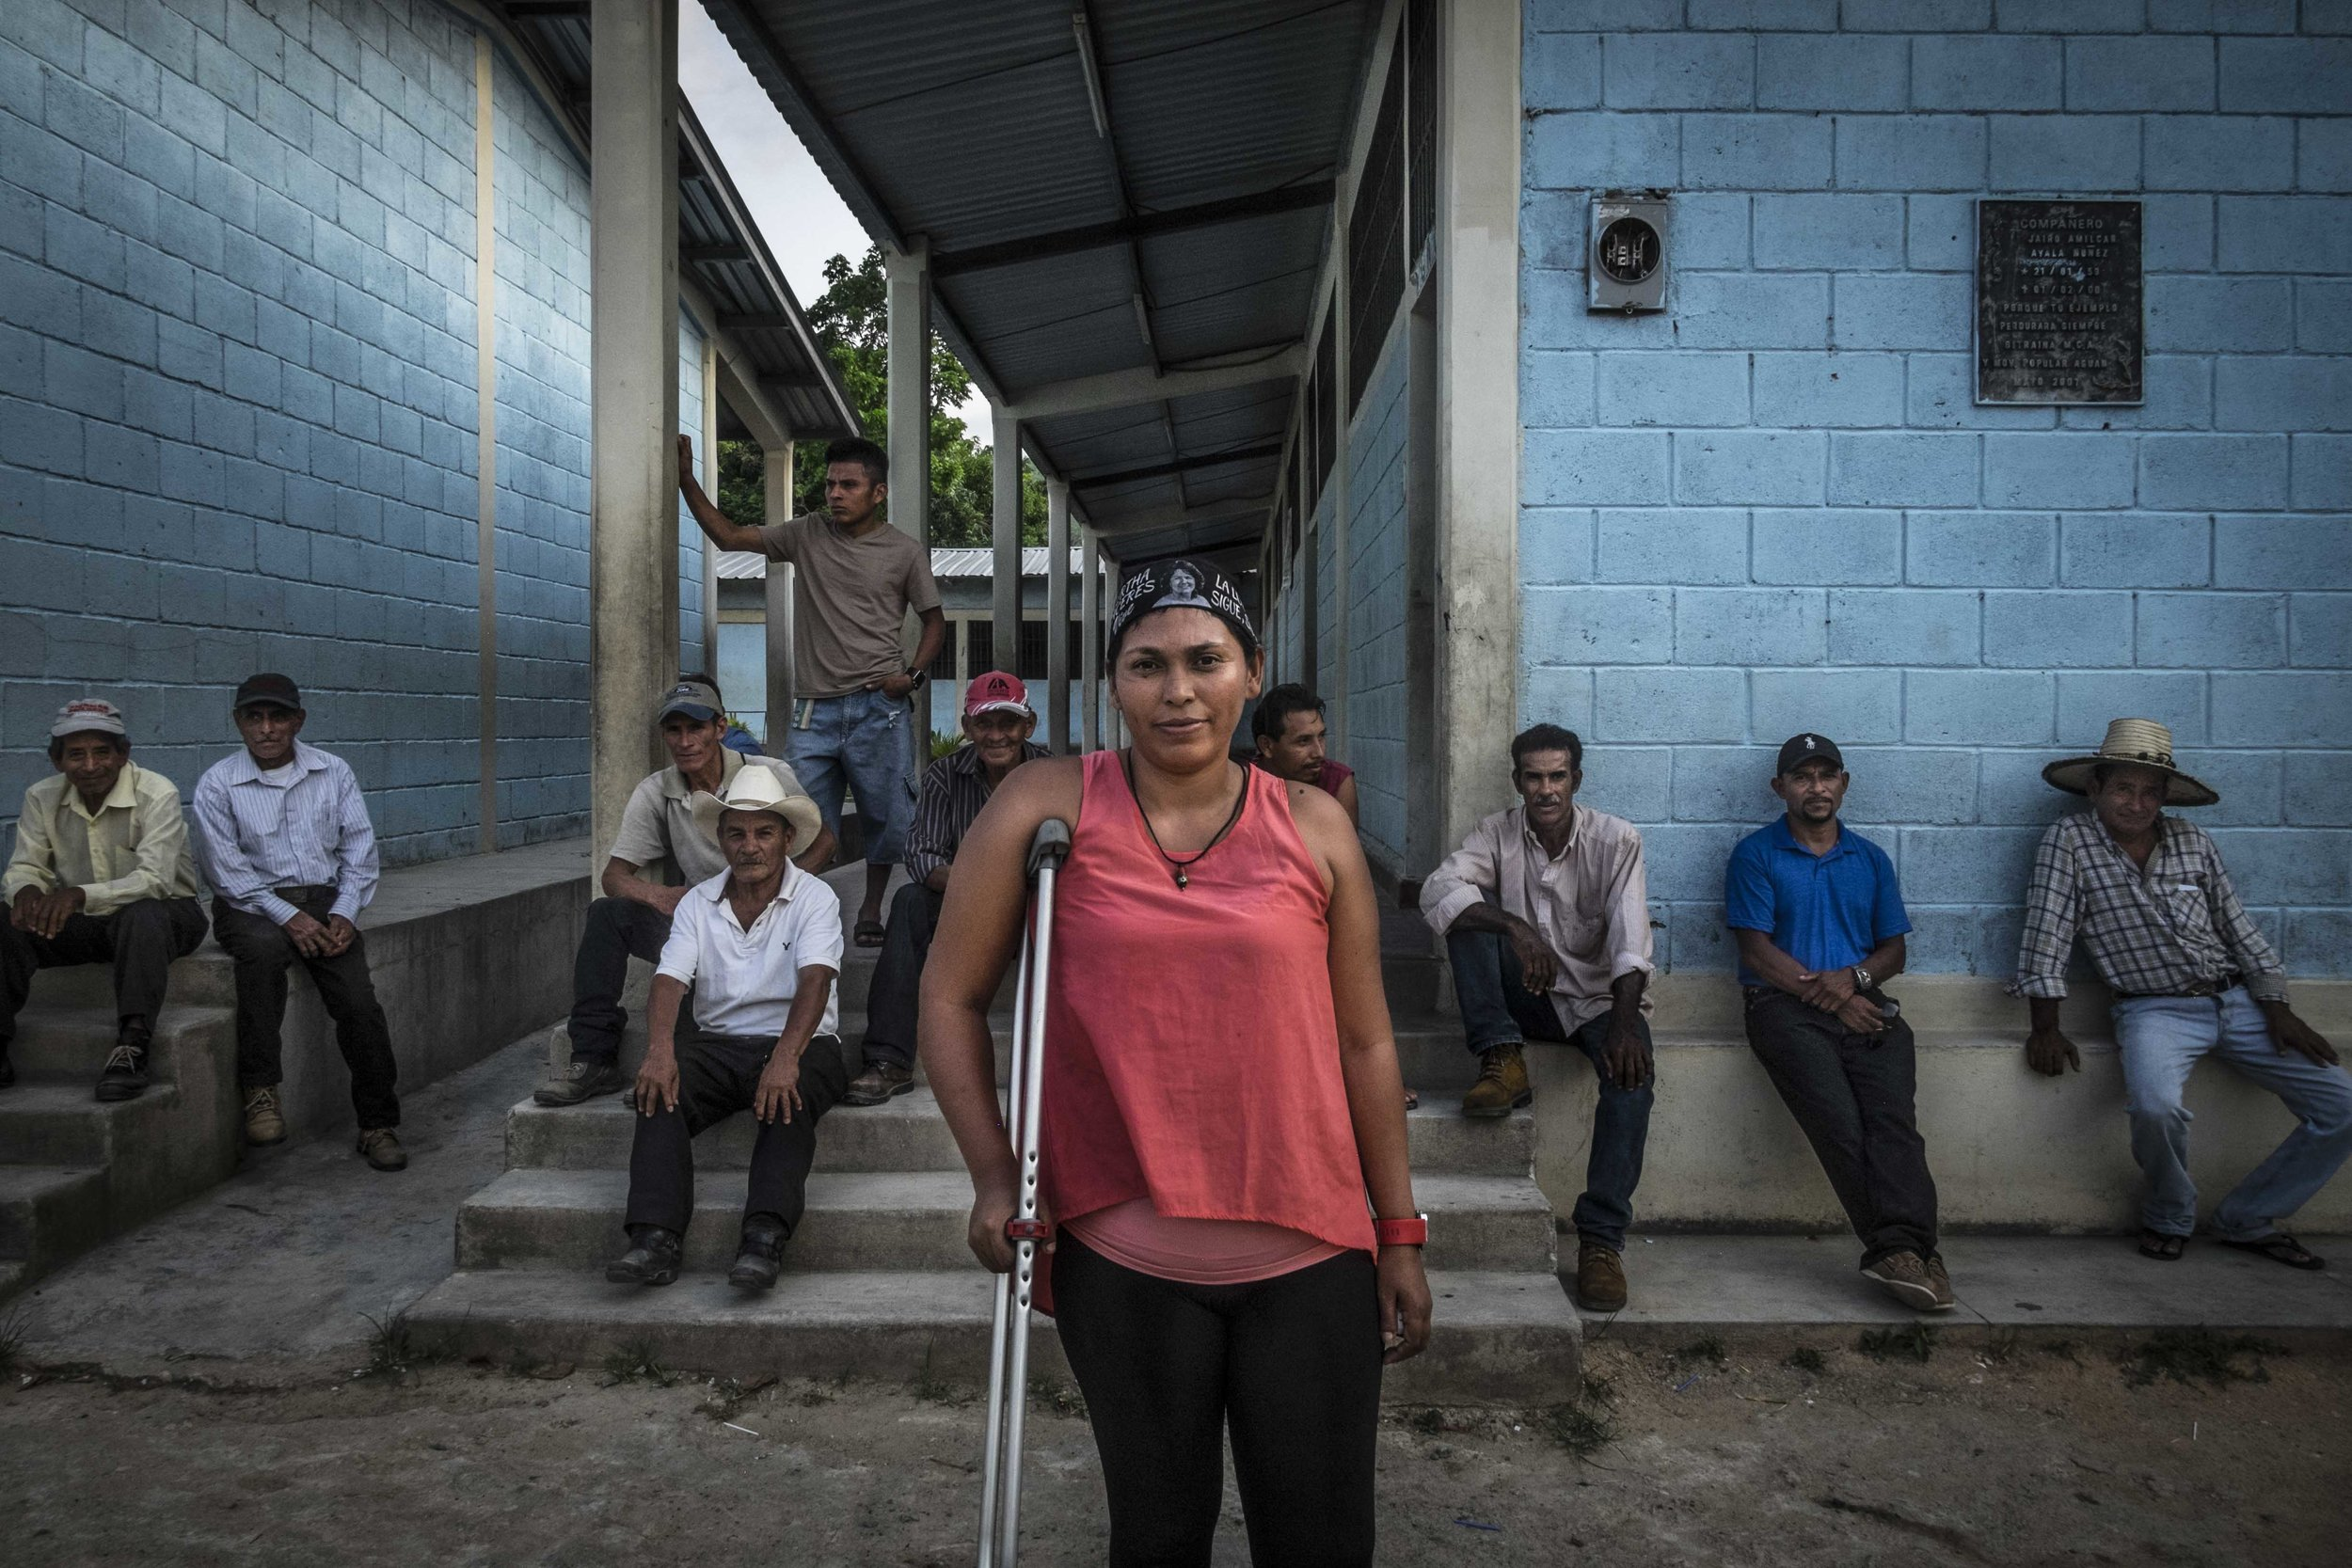 Lemus Irma Amaya, along with members of the small community Guadalupe Carney, outside the city of Tocoa in the department of Colon, Honduras. Irma is the coordinator of (OPDHA) Permanent Observatory of human rights in the Bajo Aguan, representative of the peasants' movement, she was wounded during an assassination attempt against her November 19, 2015 while traveling by motorcycle with his partner who was also a defender of peasants rights , he had suffered an assasination attack a week before Irma.